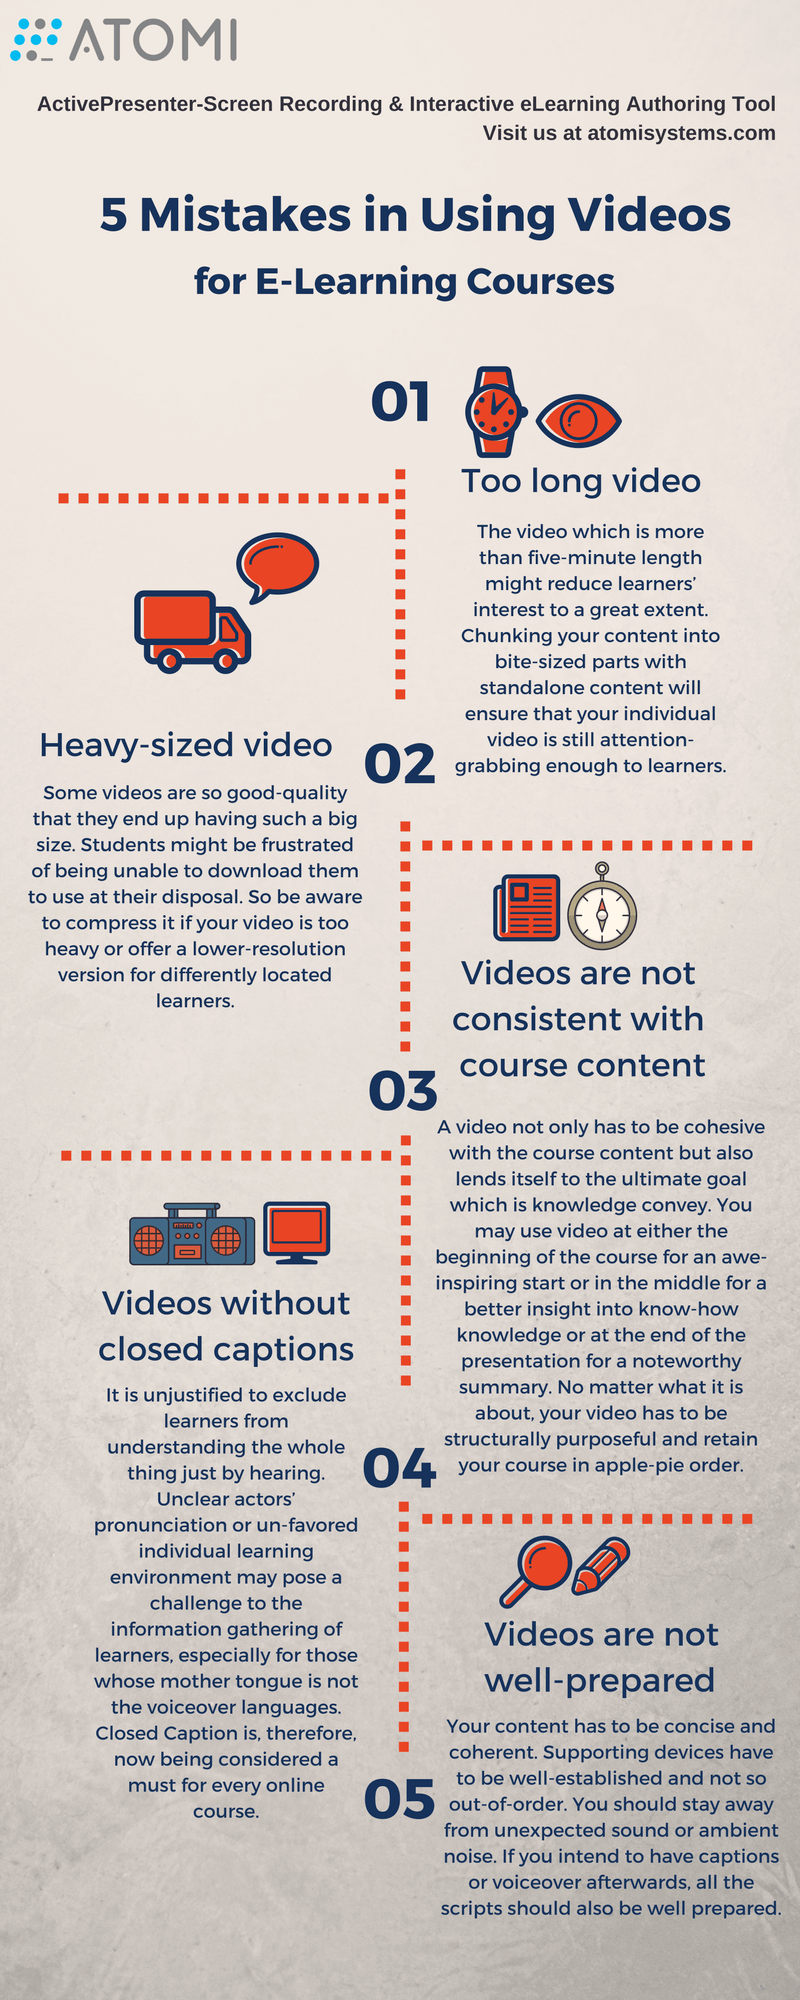 Are you using videos in your eLearning?